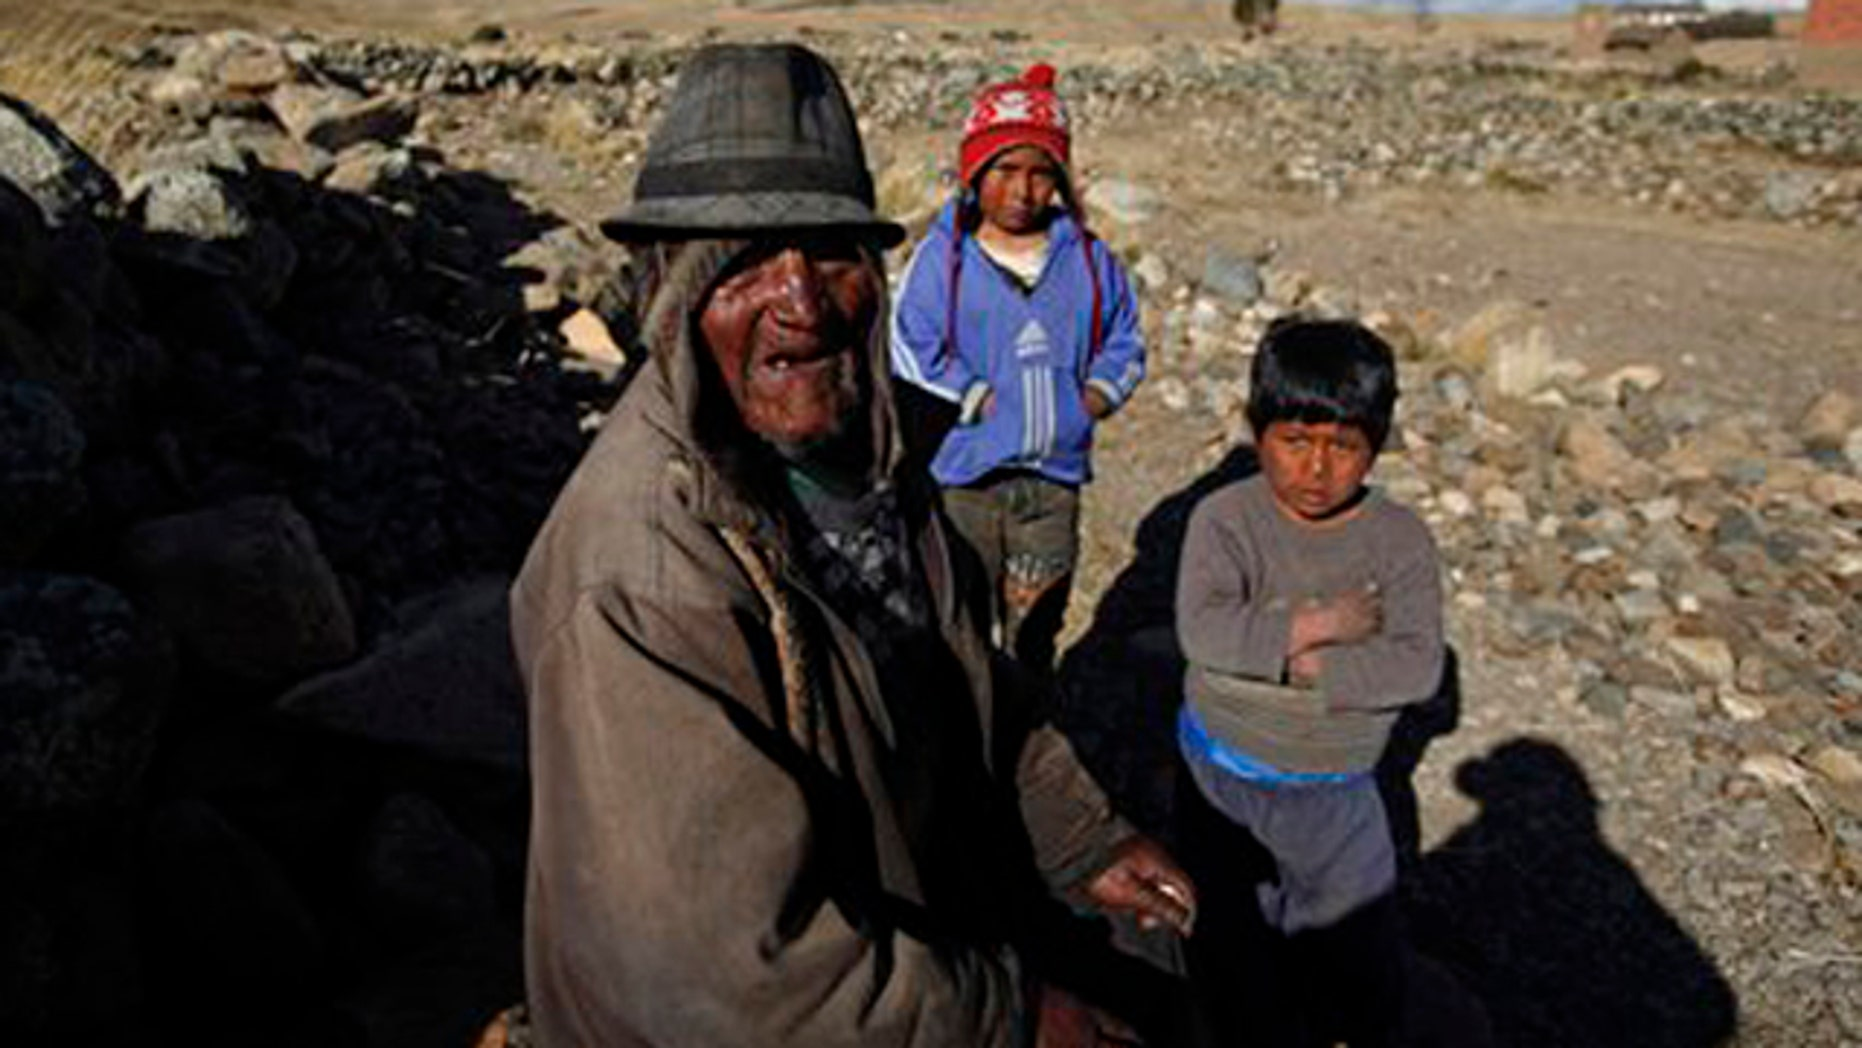 Aug 13, 2013: Carmelo Flores Laura, a native Aymara, poses for a photo with his great-grandchildren outside his home in the village of Frasquia, Bolivia.